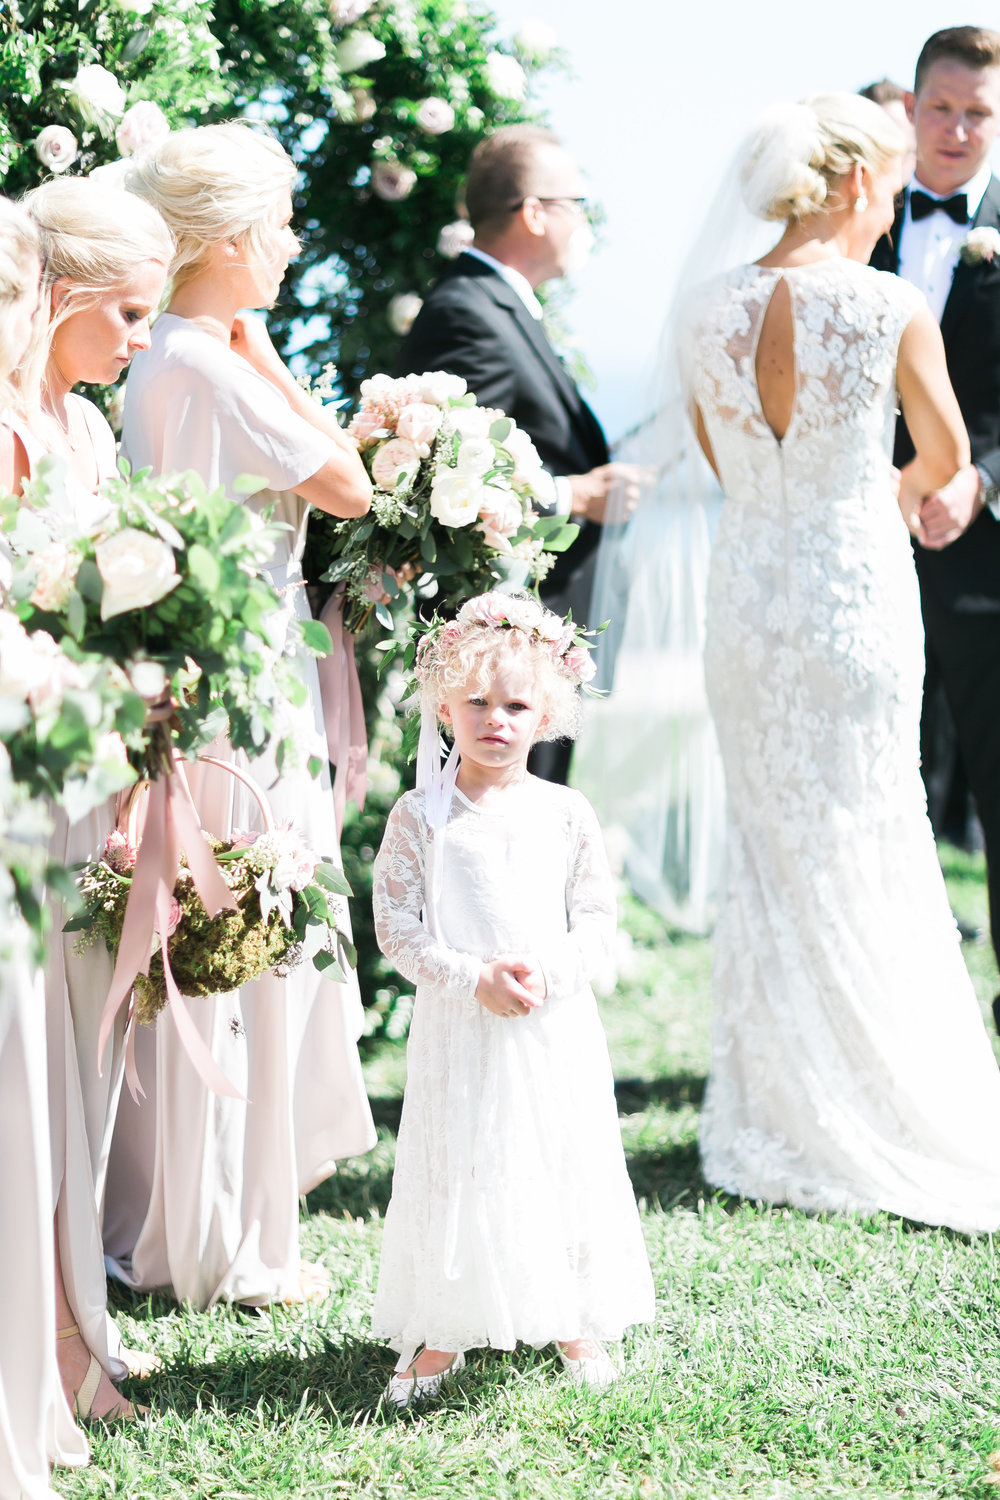 Flower girl in lace dress at wedding ceremony.    CREDITS:  Destination Wedding Planner  ANDREA EPPOLITO EVENTS   ·  Images by  J.ANNE P  HOTOGRAPHY   ·  Video  HOO FILMS   ·  Venue Ritz Carlton Bacara Santa Barbara  · Gown  MONIQUE LHULLIER  · Bridesmaids Dresses  SHOW ME YOUR MUMU  · Stationery  SHE PAPERIE  · Bride's Shoes  BADGLEY MISCHKA  · Hair and Makeup  TEAM HAIR AND MAKEUP  · Floral  BLUE MAGNOLIA  · Linen  LA TAVOLA  · Decor Rentals  TENT MERCHANT  · Calligraphy  EBB  ·Lighting  FIVE STAR AV  · Ice Cream Station  MCCONNELL'S ICE CREAM